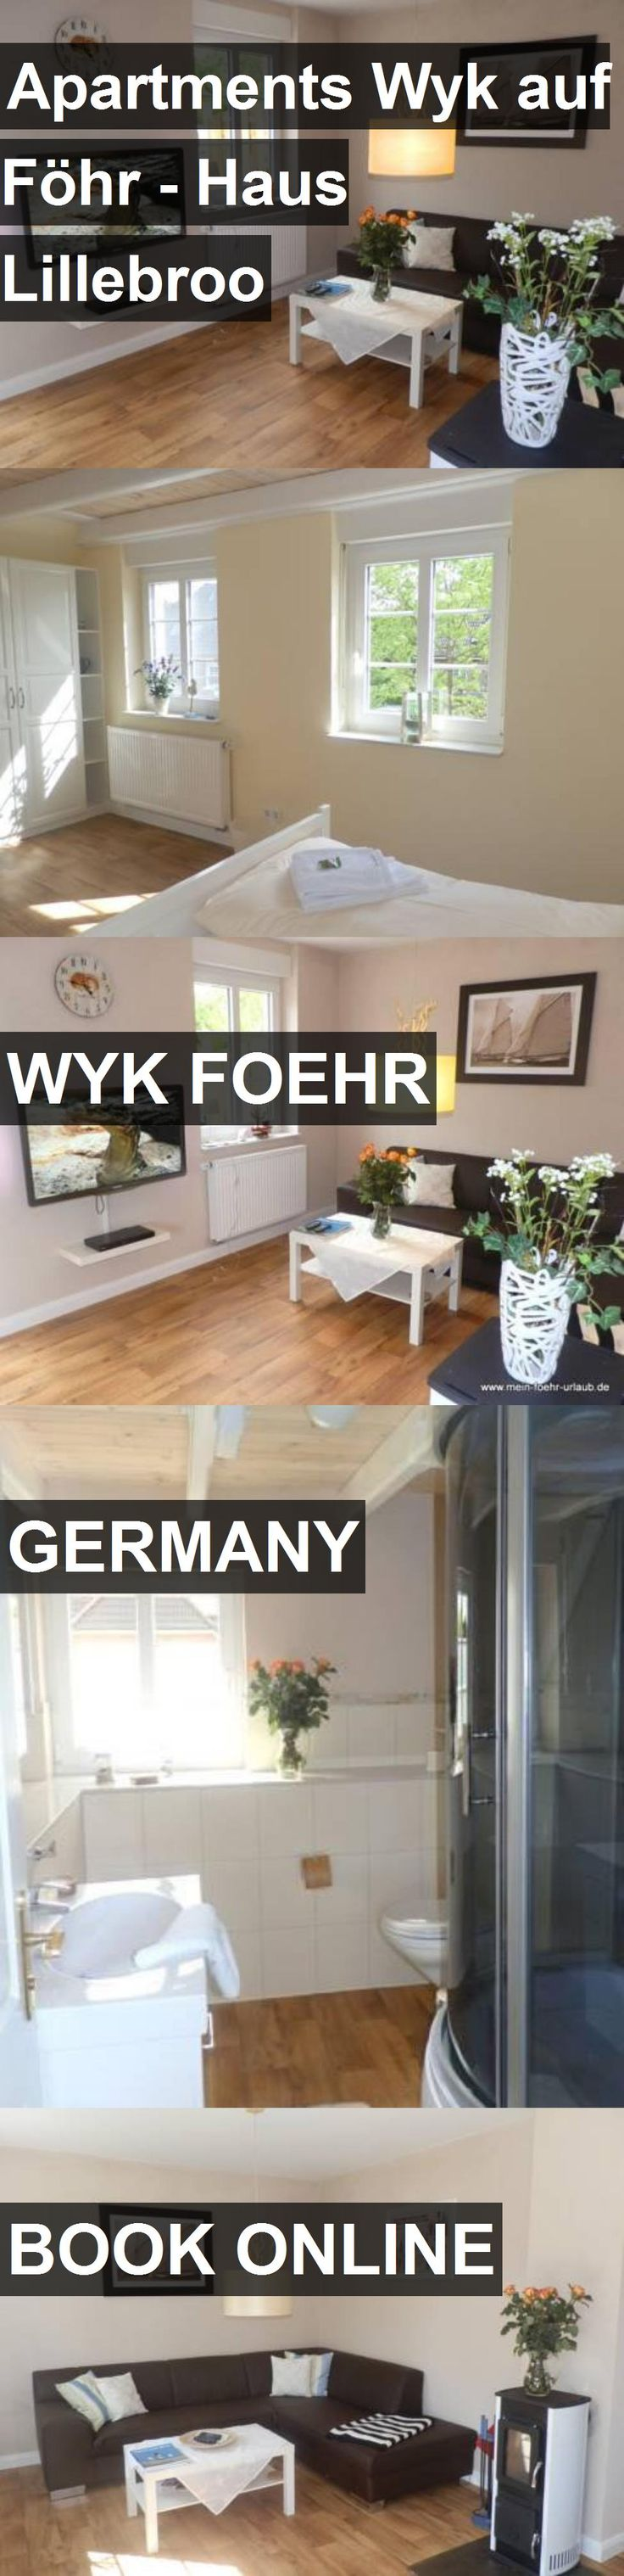 Apartments Wyk auf Föhr - Haus Lillebroo in Wyk Foehr, Germany. For more information, photos, reviews and best prices please follow the link. #Germany #WykFoehr #travel #vacation #apartment